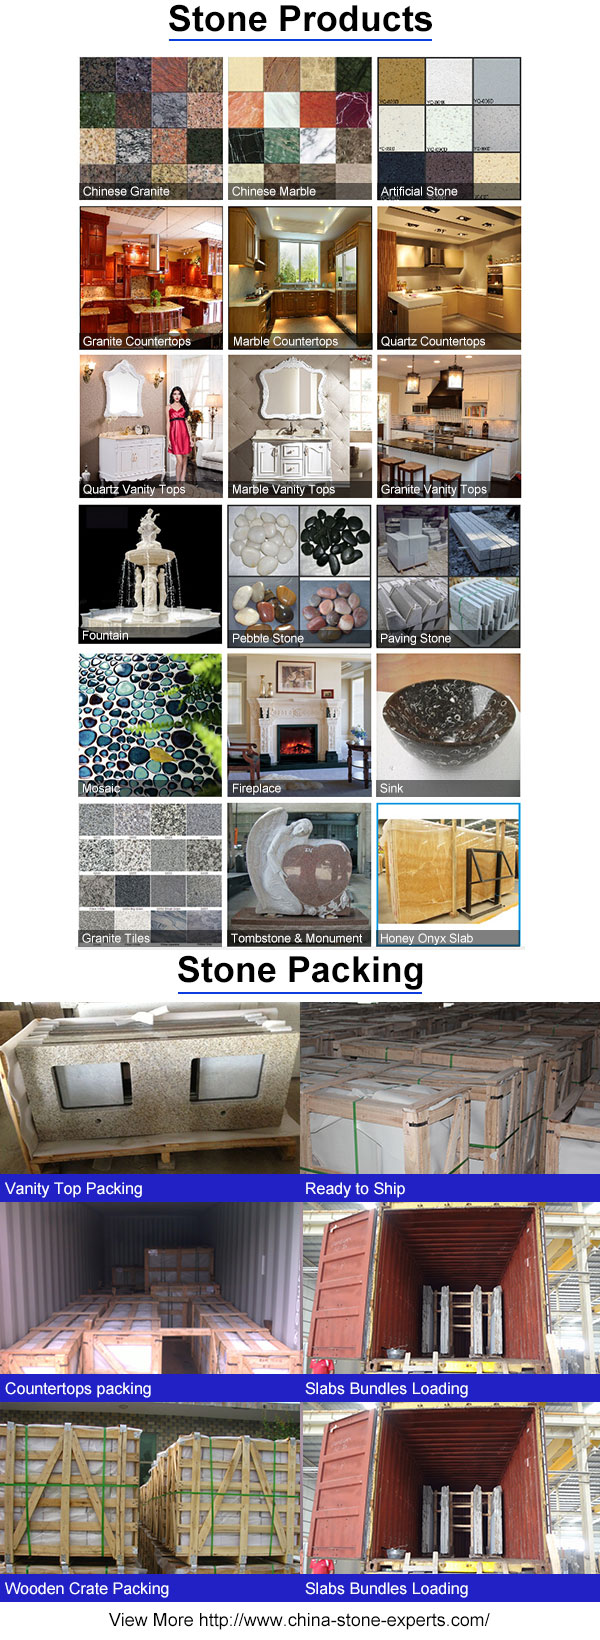 Yeyang Stone Products+Packing-2.jpg